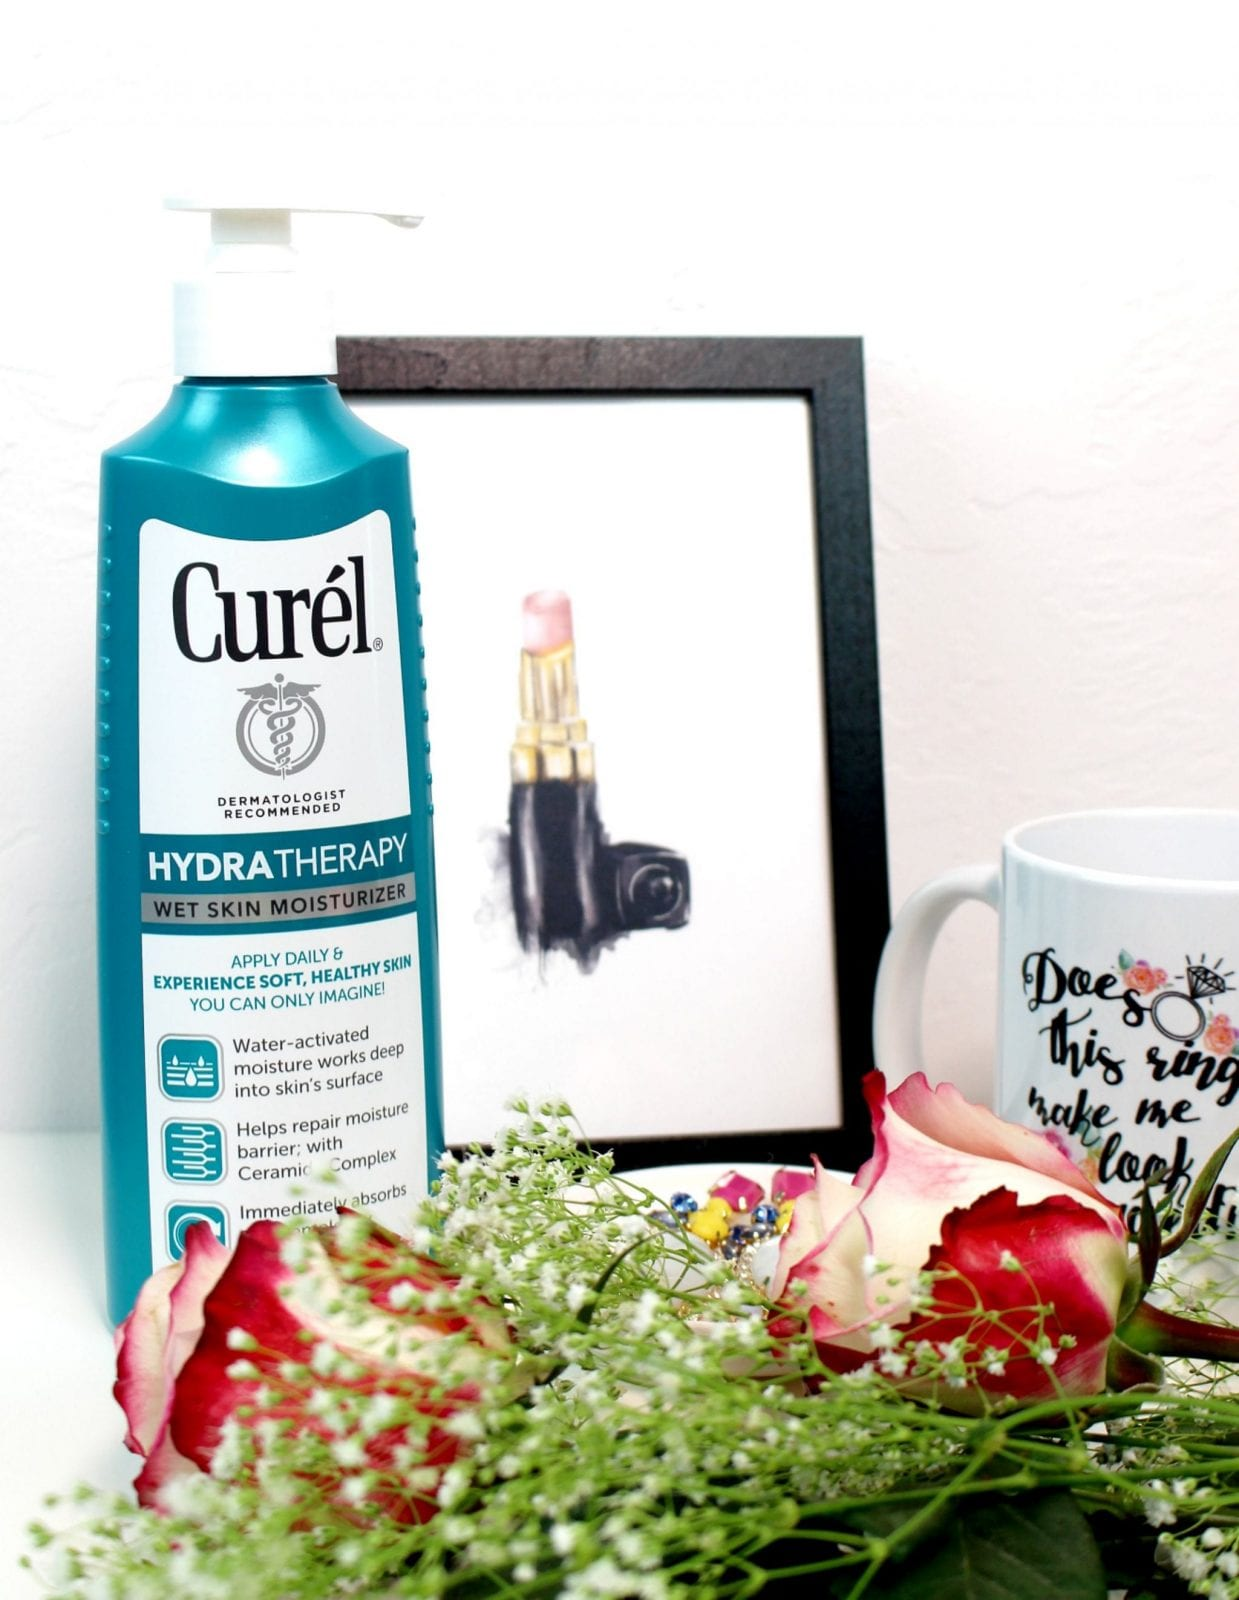 This is a display of my desk featuring the Curel Wet Skin Moisturizer